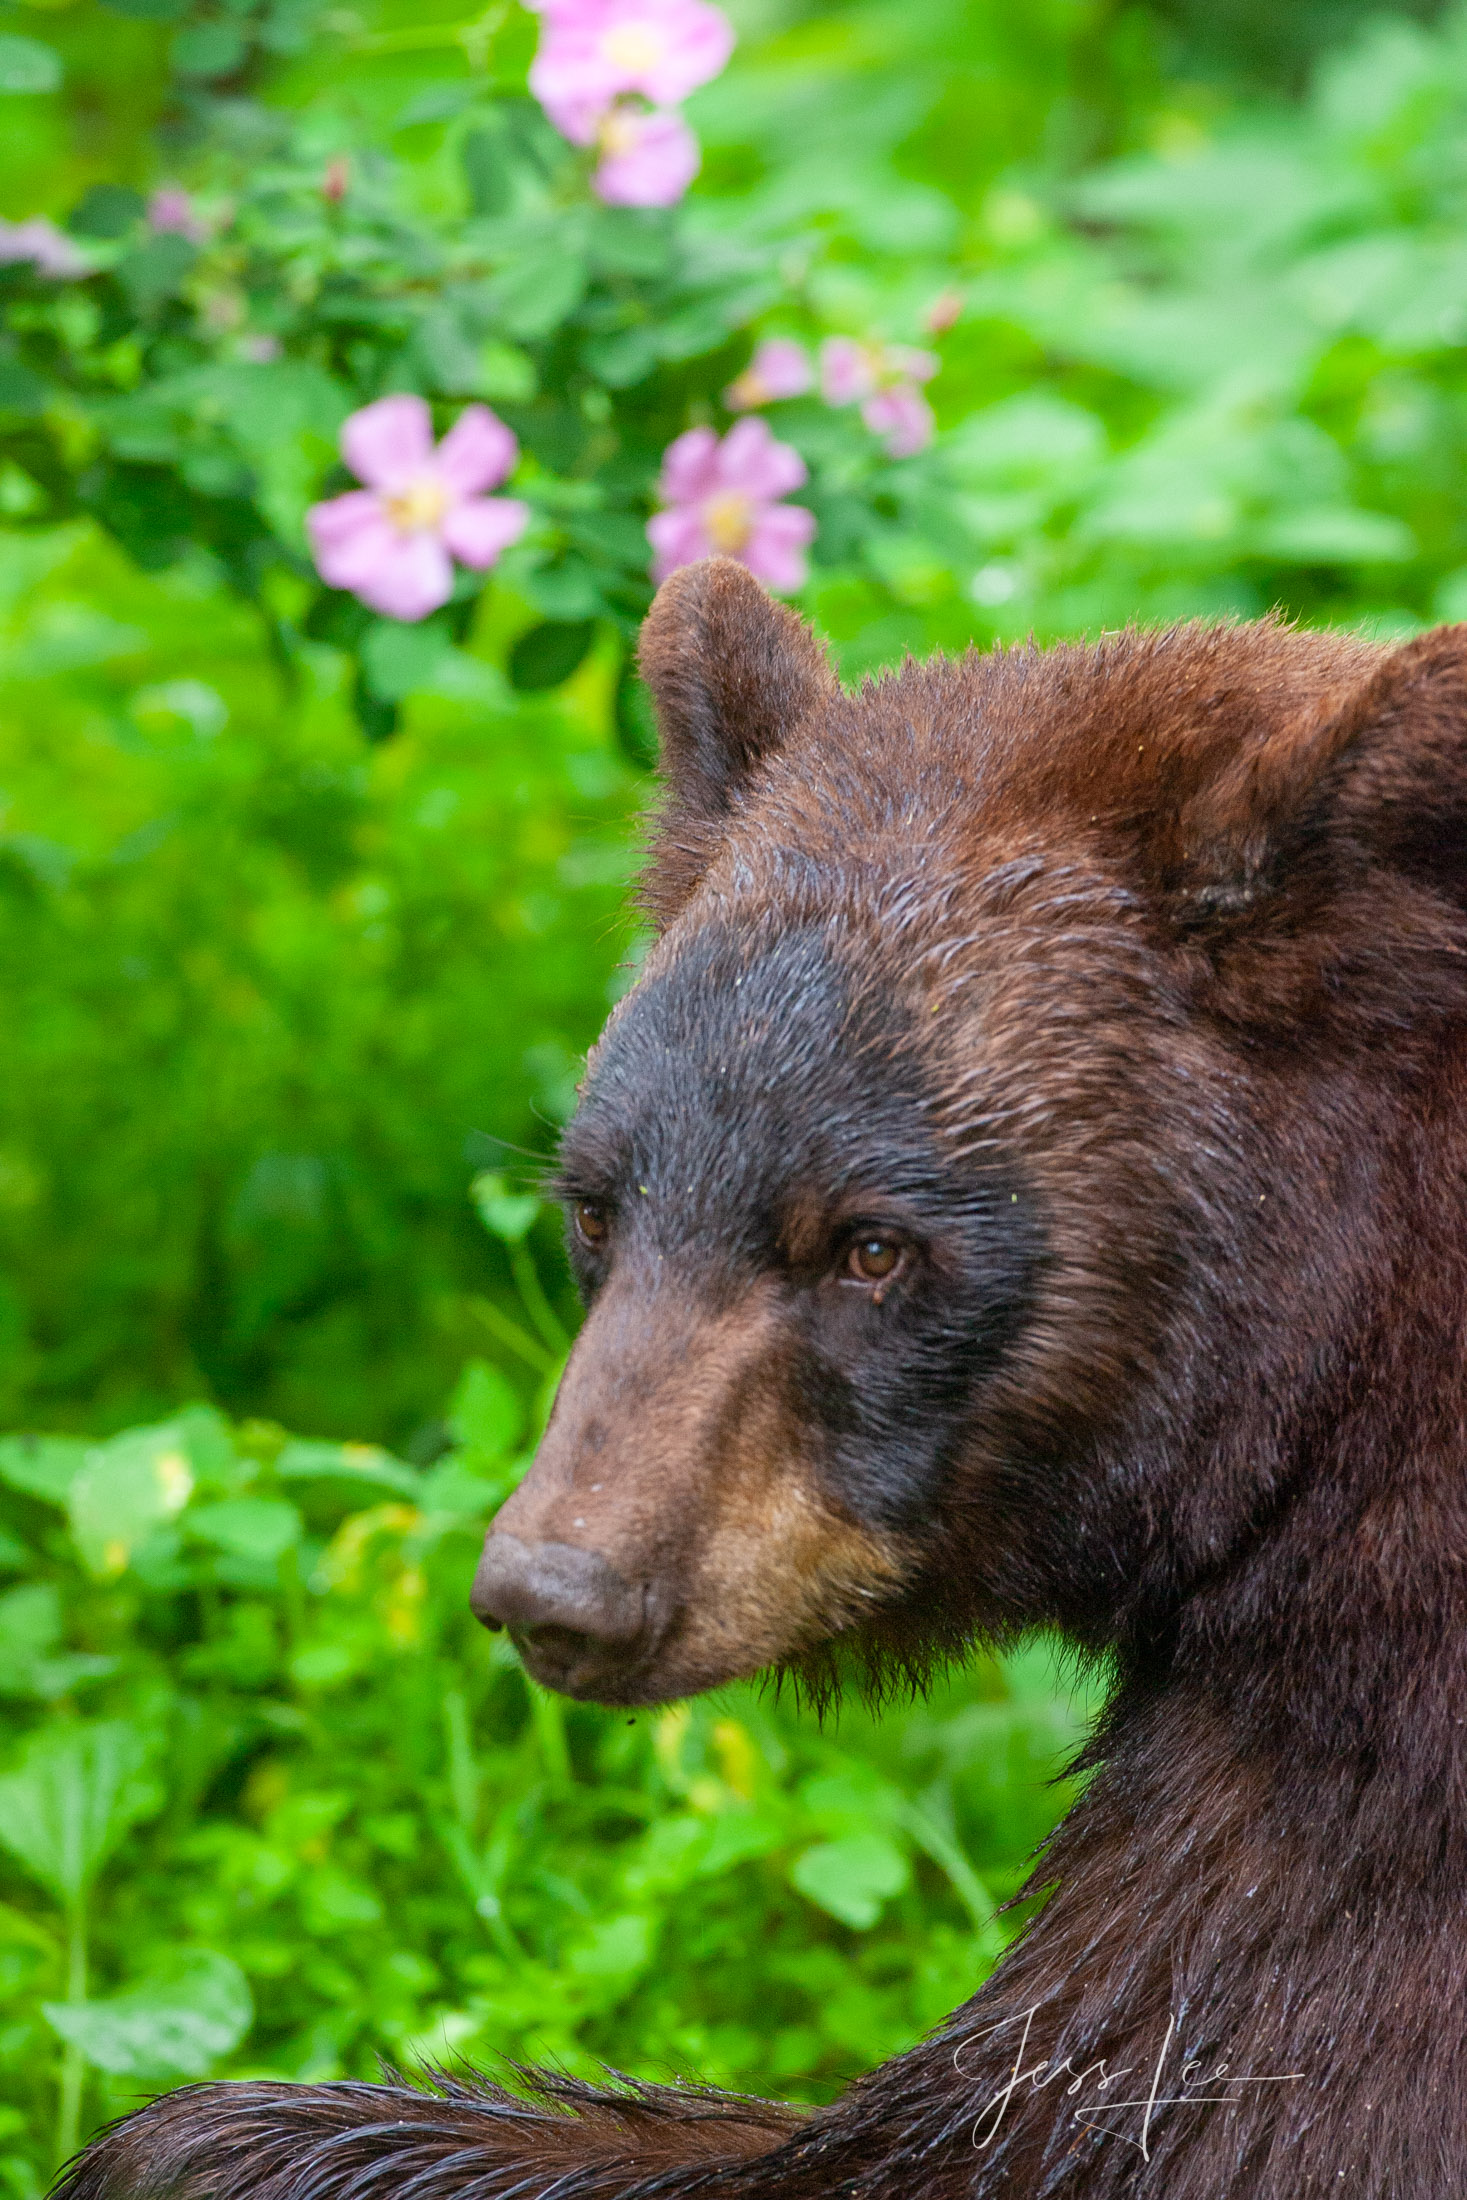 Black Bear Headshot Photo  Limited Edition Picture These bear photographs are offered as high-quality prints for sale as created...